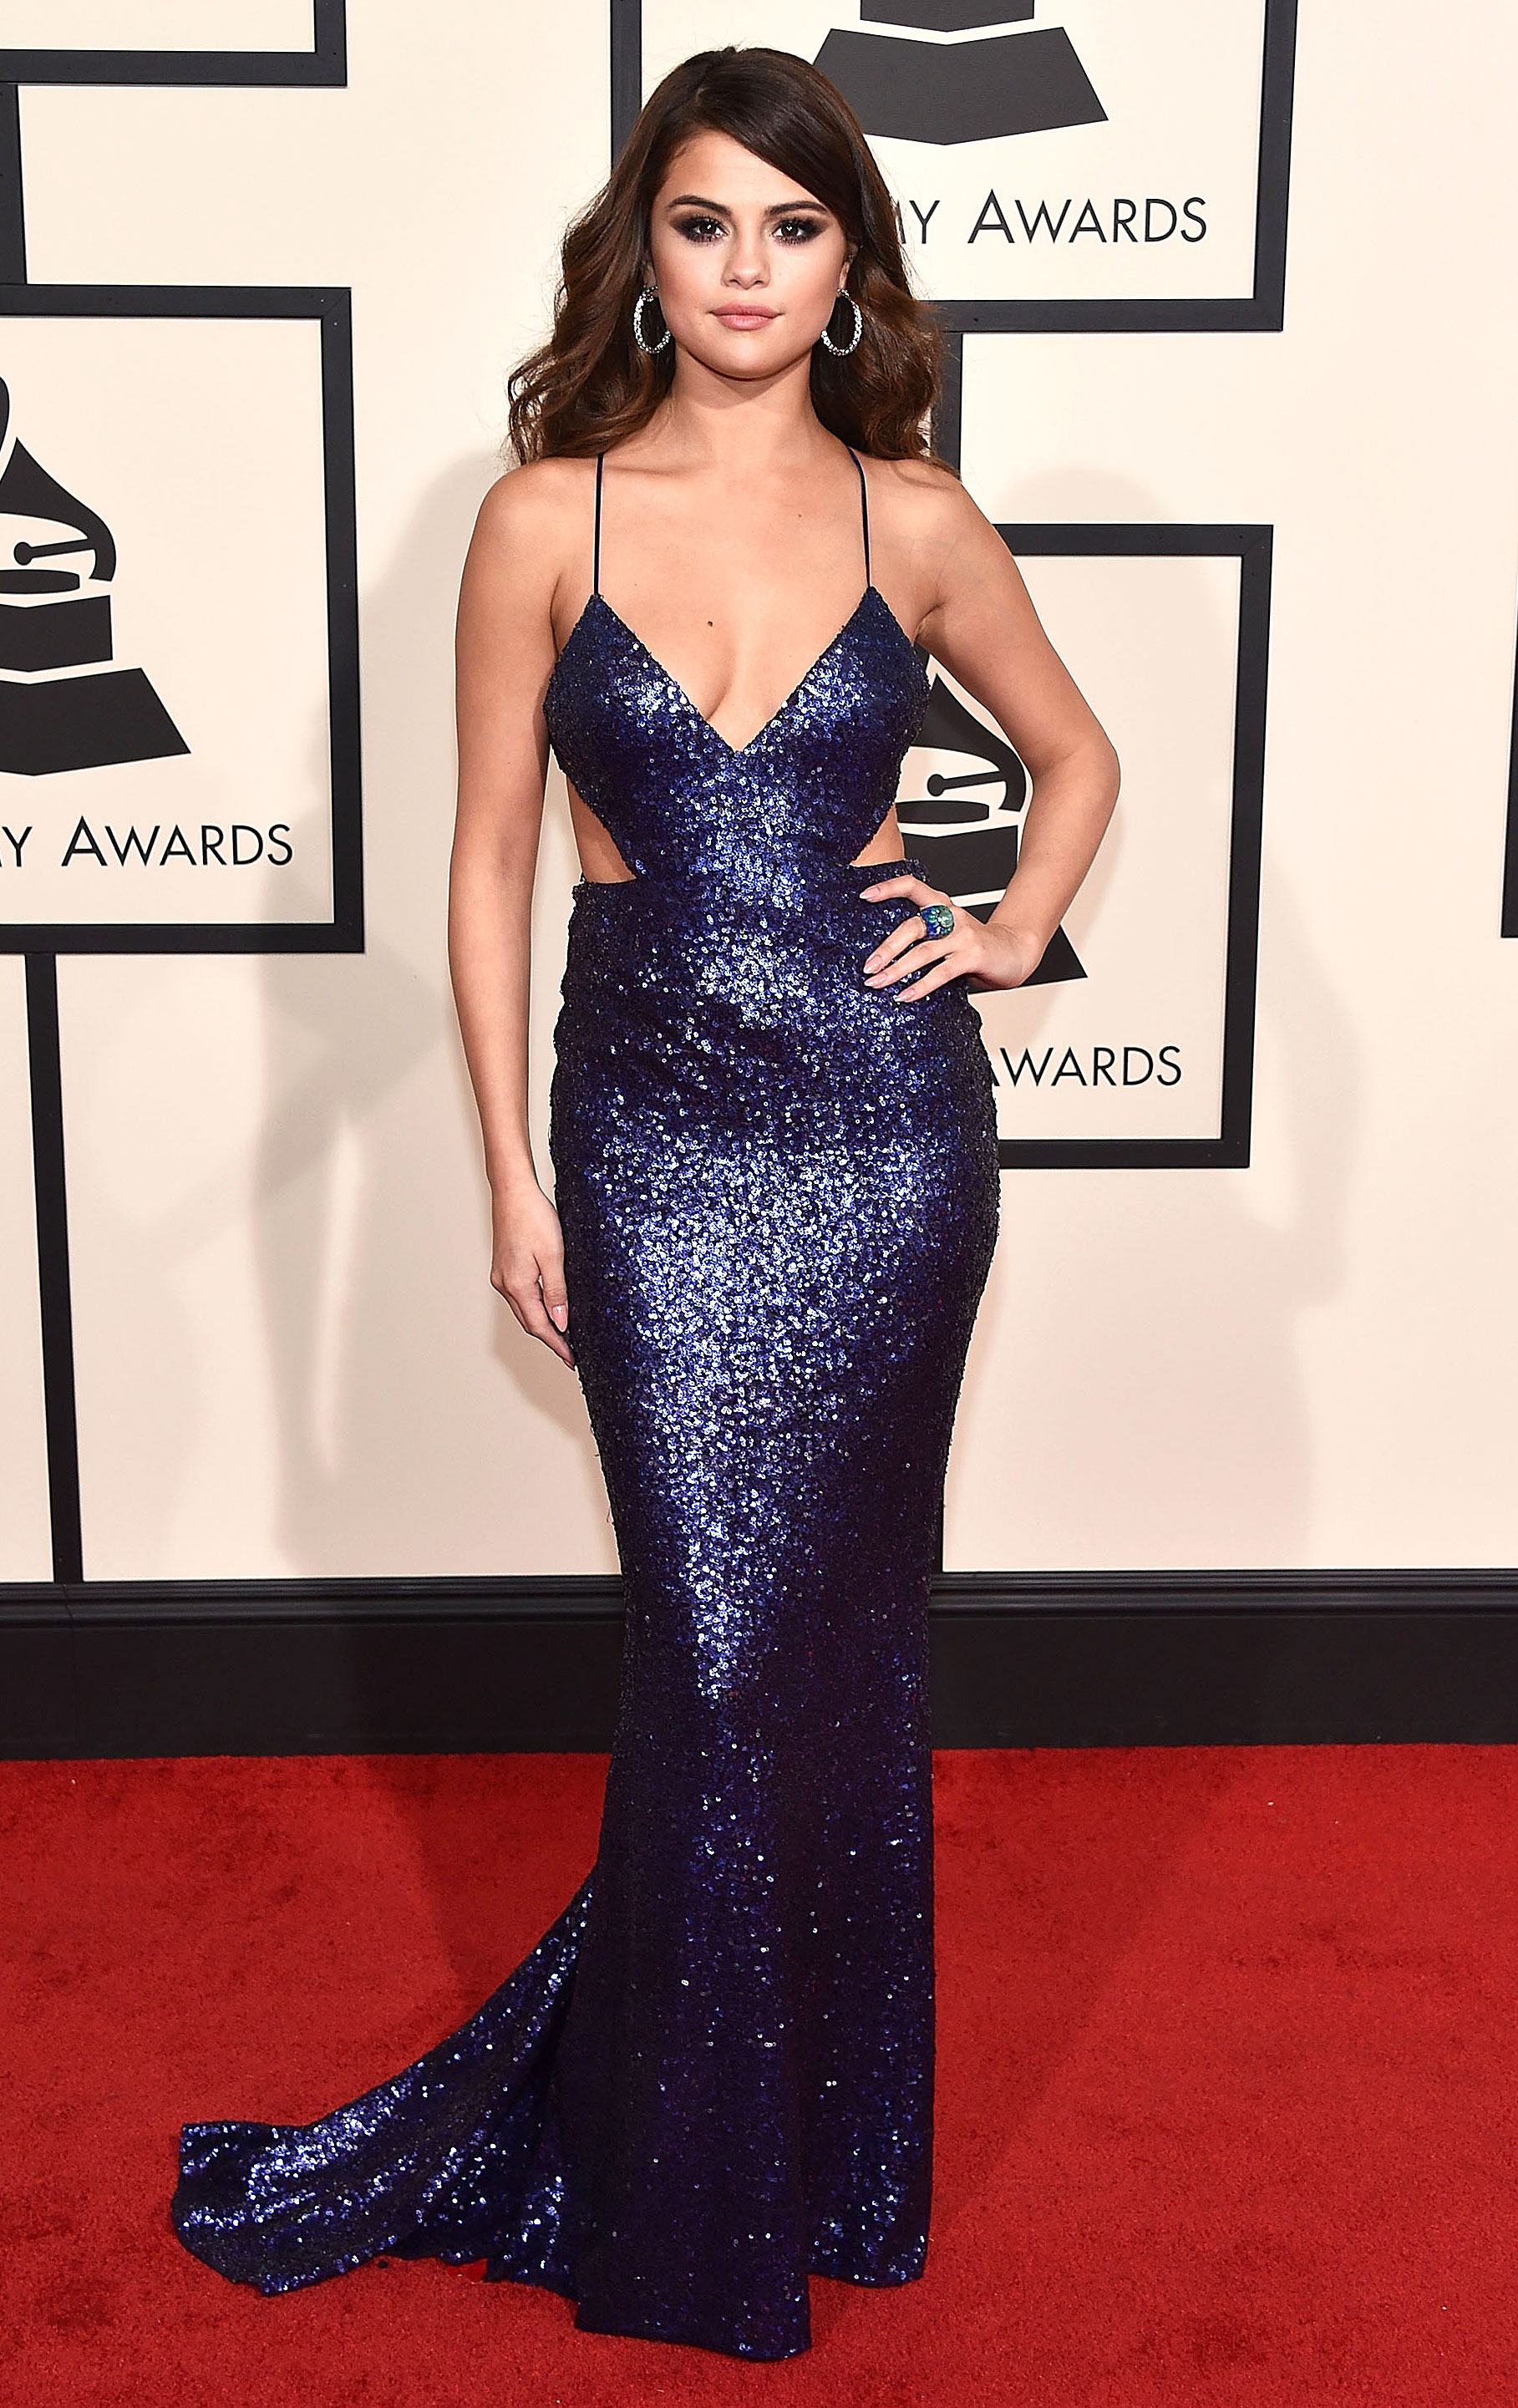 f07fa141a1f Selena Gomez s Best Red Carpet Moments and Style Evolution